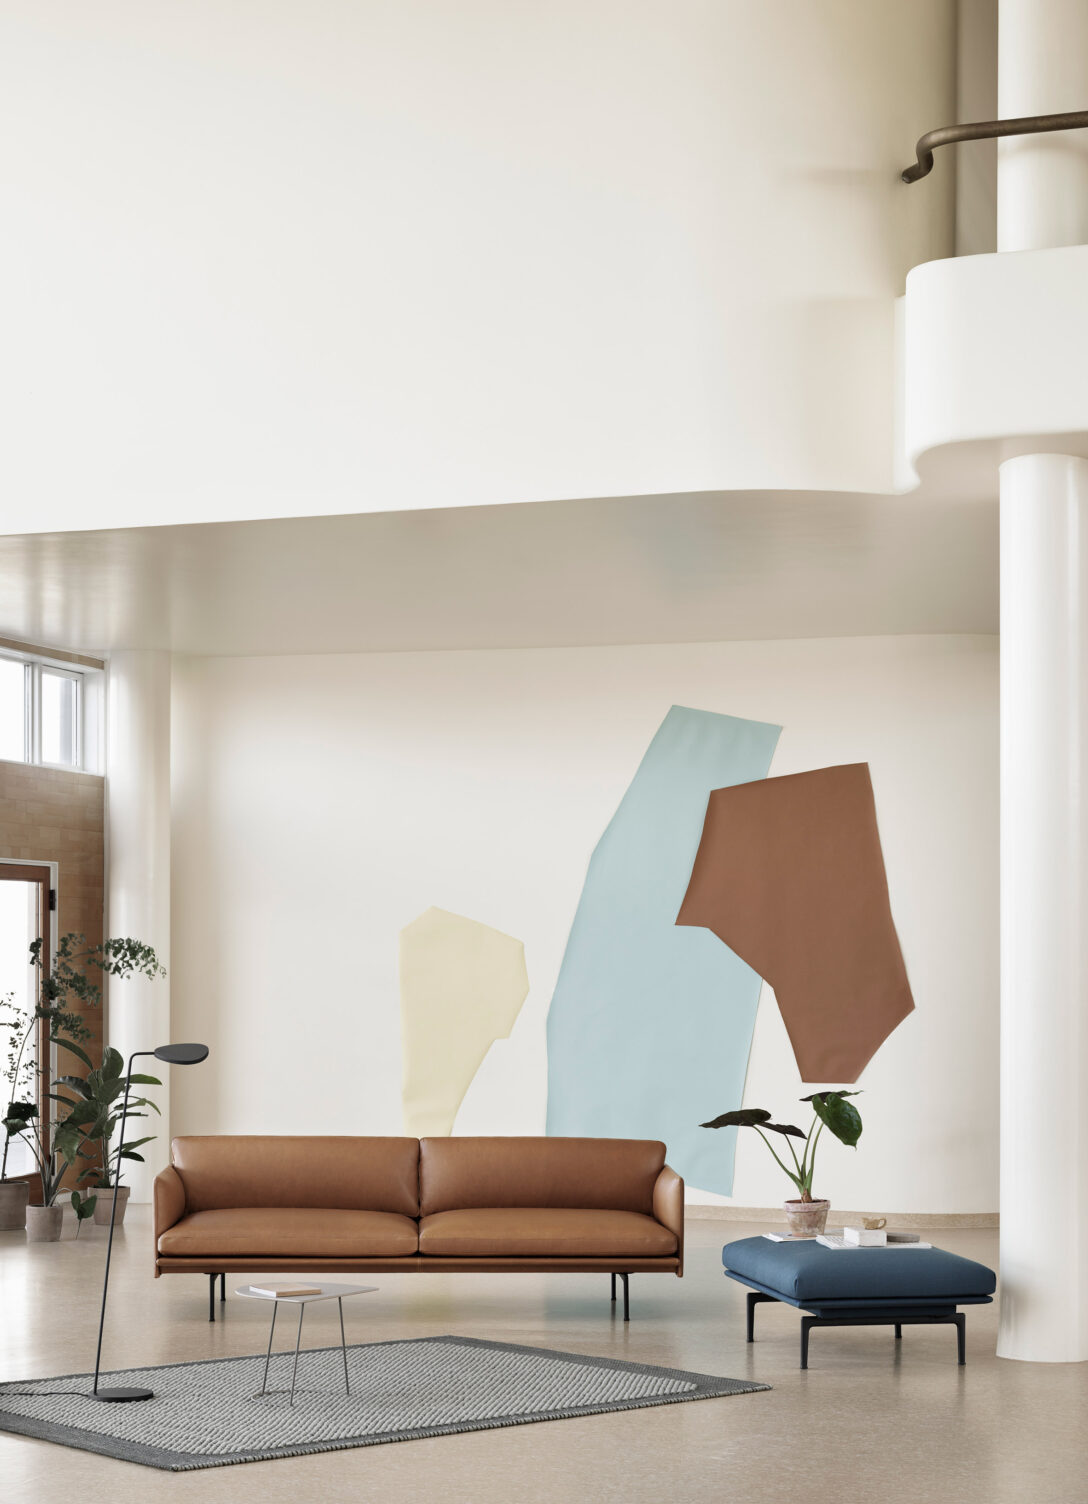 Large Size of Muuto Sofa Outline Uk 3 1/2 Compose Review Sofabord Tilbud Connect Dimensions Furniture Oslo 2 Seater Pris Anderssen Voll Designs Muutos First Ever High Back Sofa Muuto Sofa